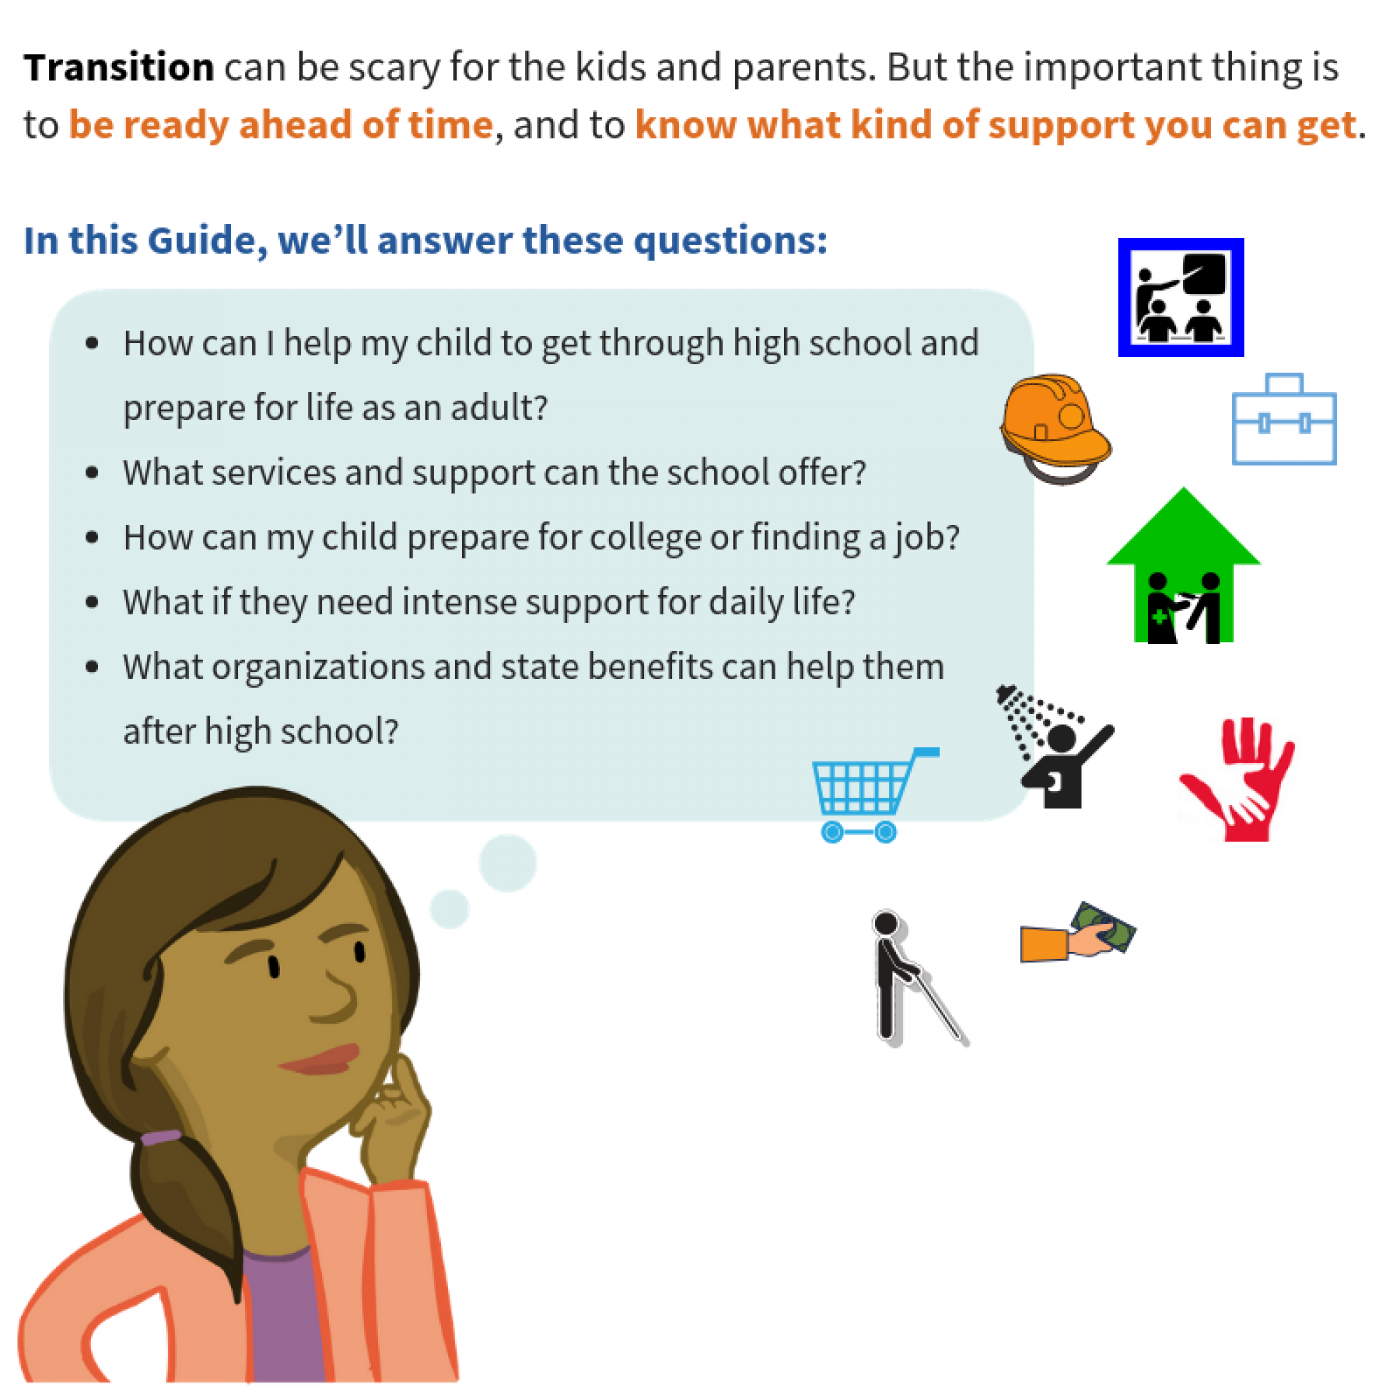 Transition can be scary for the kids and parents. But the important thing is to be ready ahead of time, and to know what kind of support you can get. In this Guide, we'll answer these questions: (Image of a mom thinking about the following questions) How can I help my child to get through high school and prepare for life as an adult? What services and support can the school offer? How can my child prepare for college or finding a job? What if they need intense support for daily life? What organizations and state benefits can help them after high school?